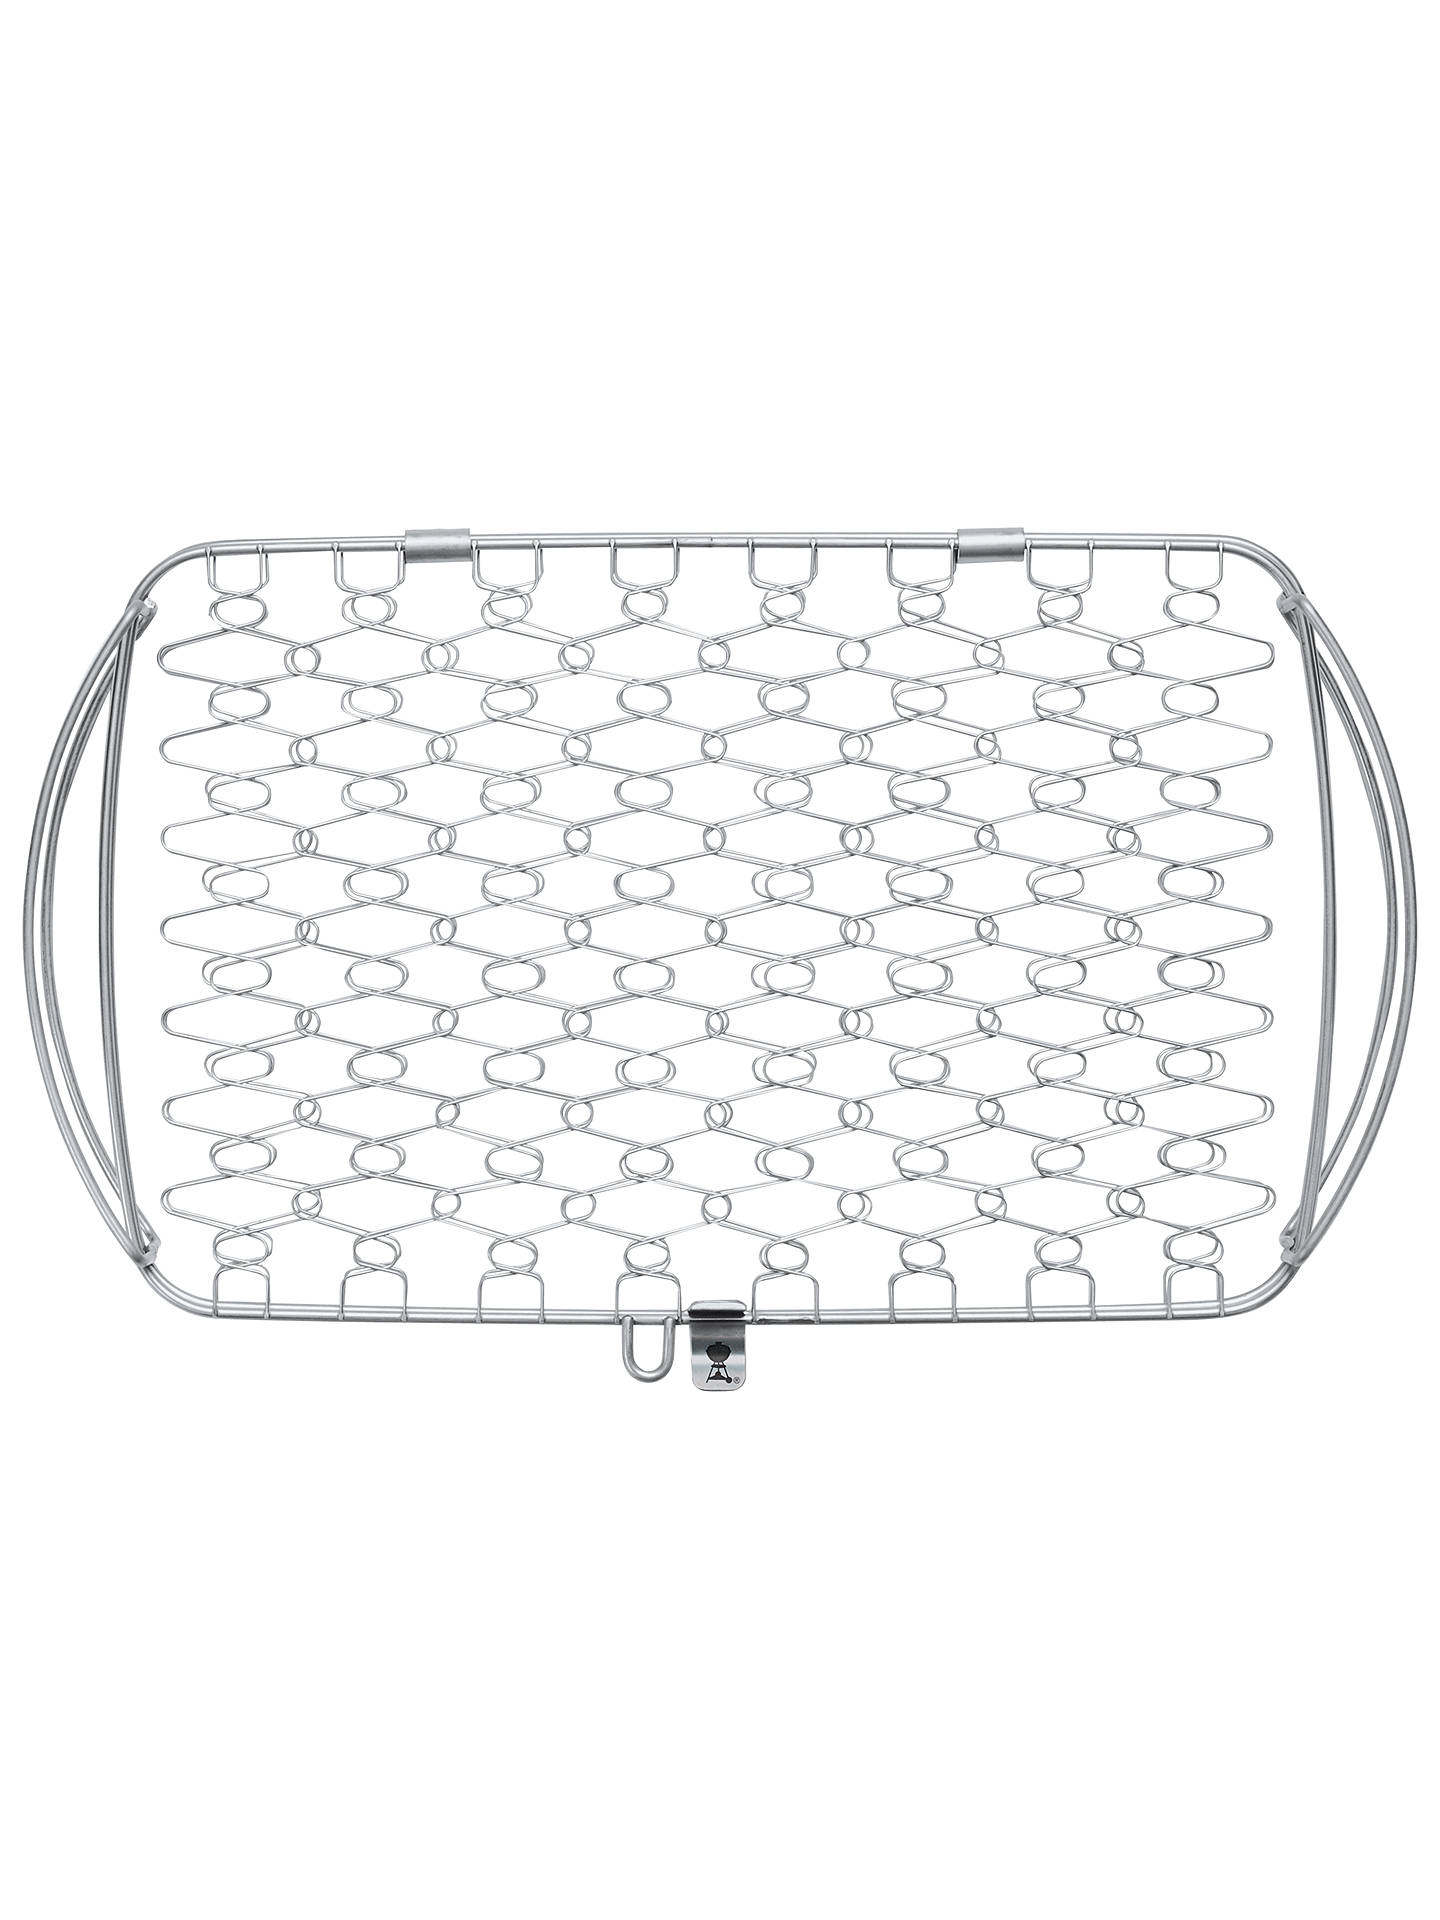 BuyWeber Original Large Fish Basket Online at johnlewis.com